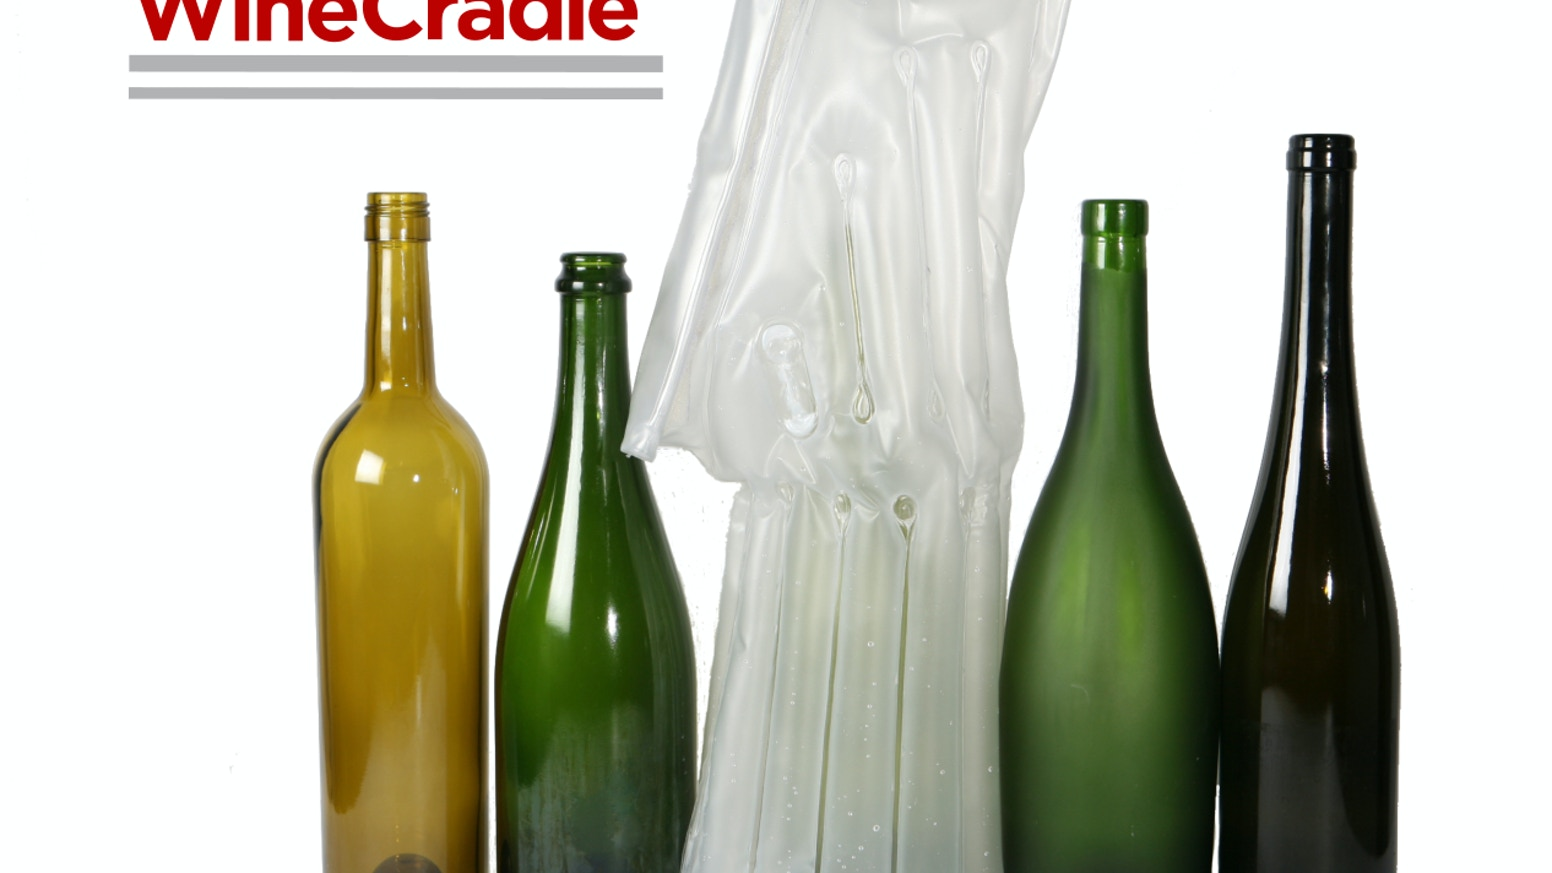 WineCradle is an inflatable, re-usable and water-tight (and wine-tight) way to transport bottles of wine, beer and liquor.